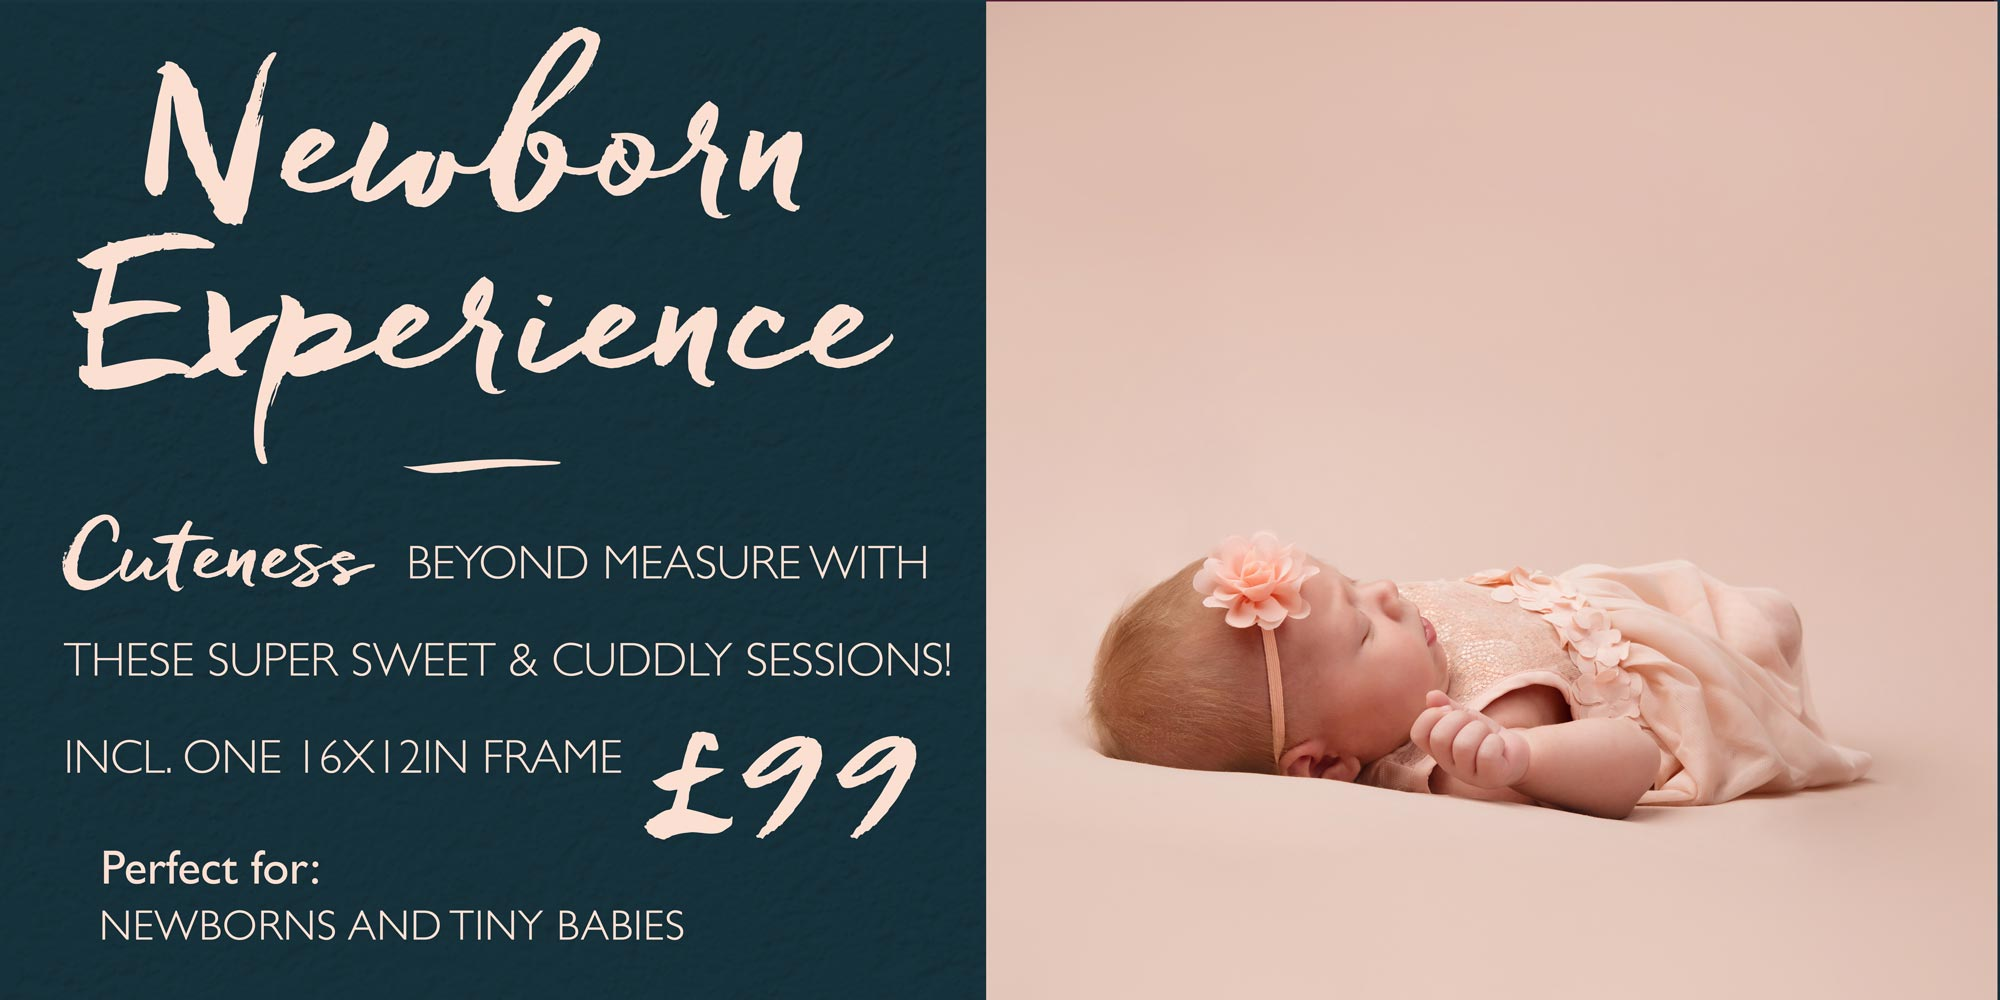 Newborn-Experience-with-16x12IN-FRAME-£99